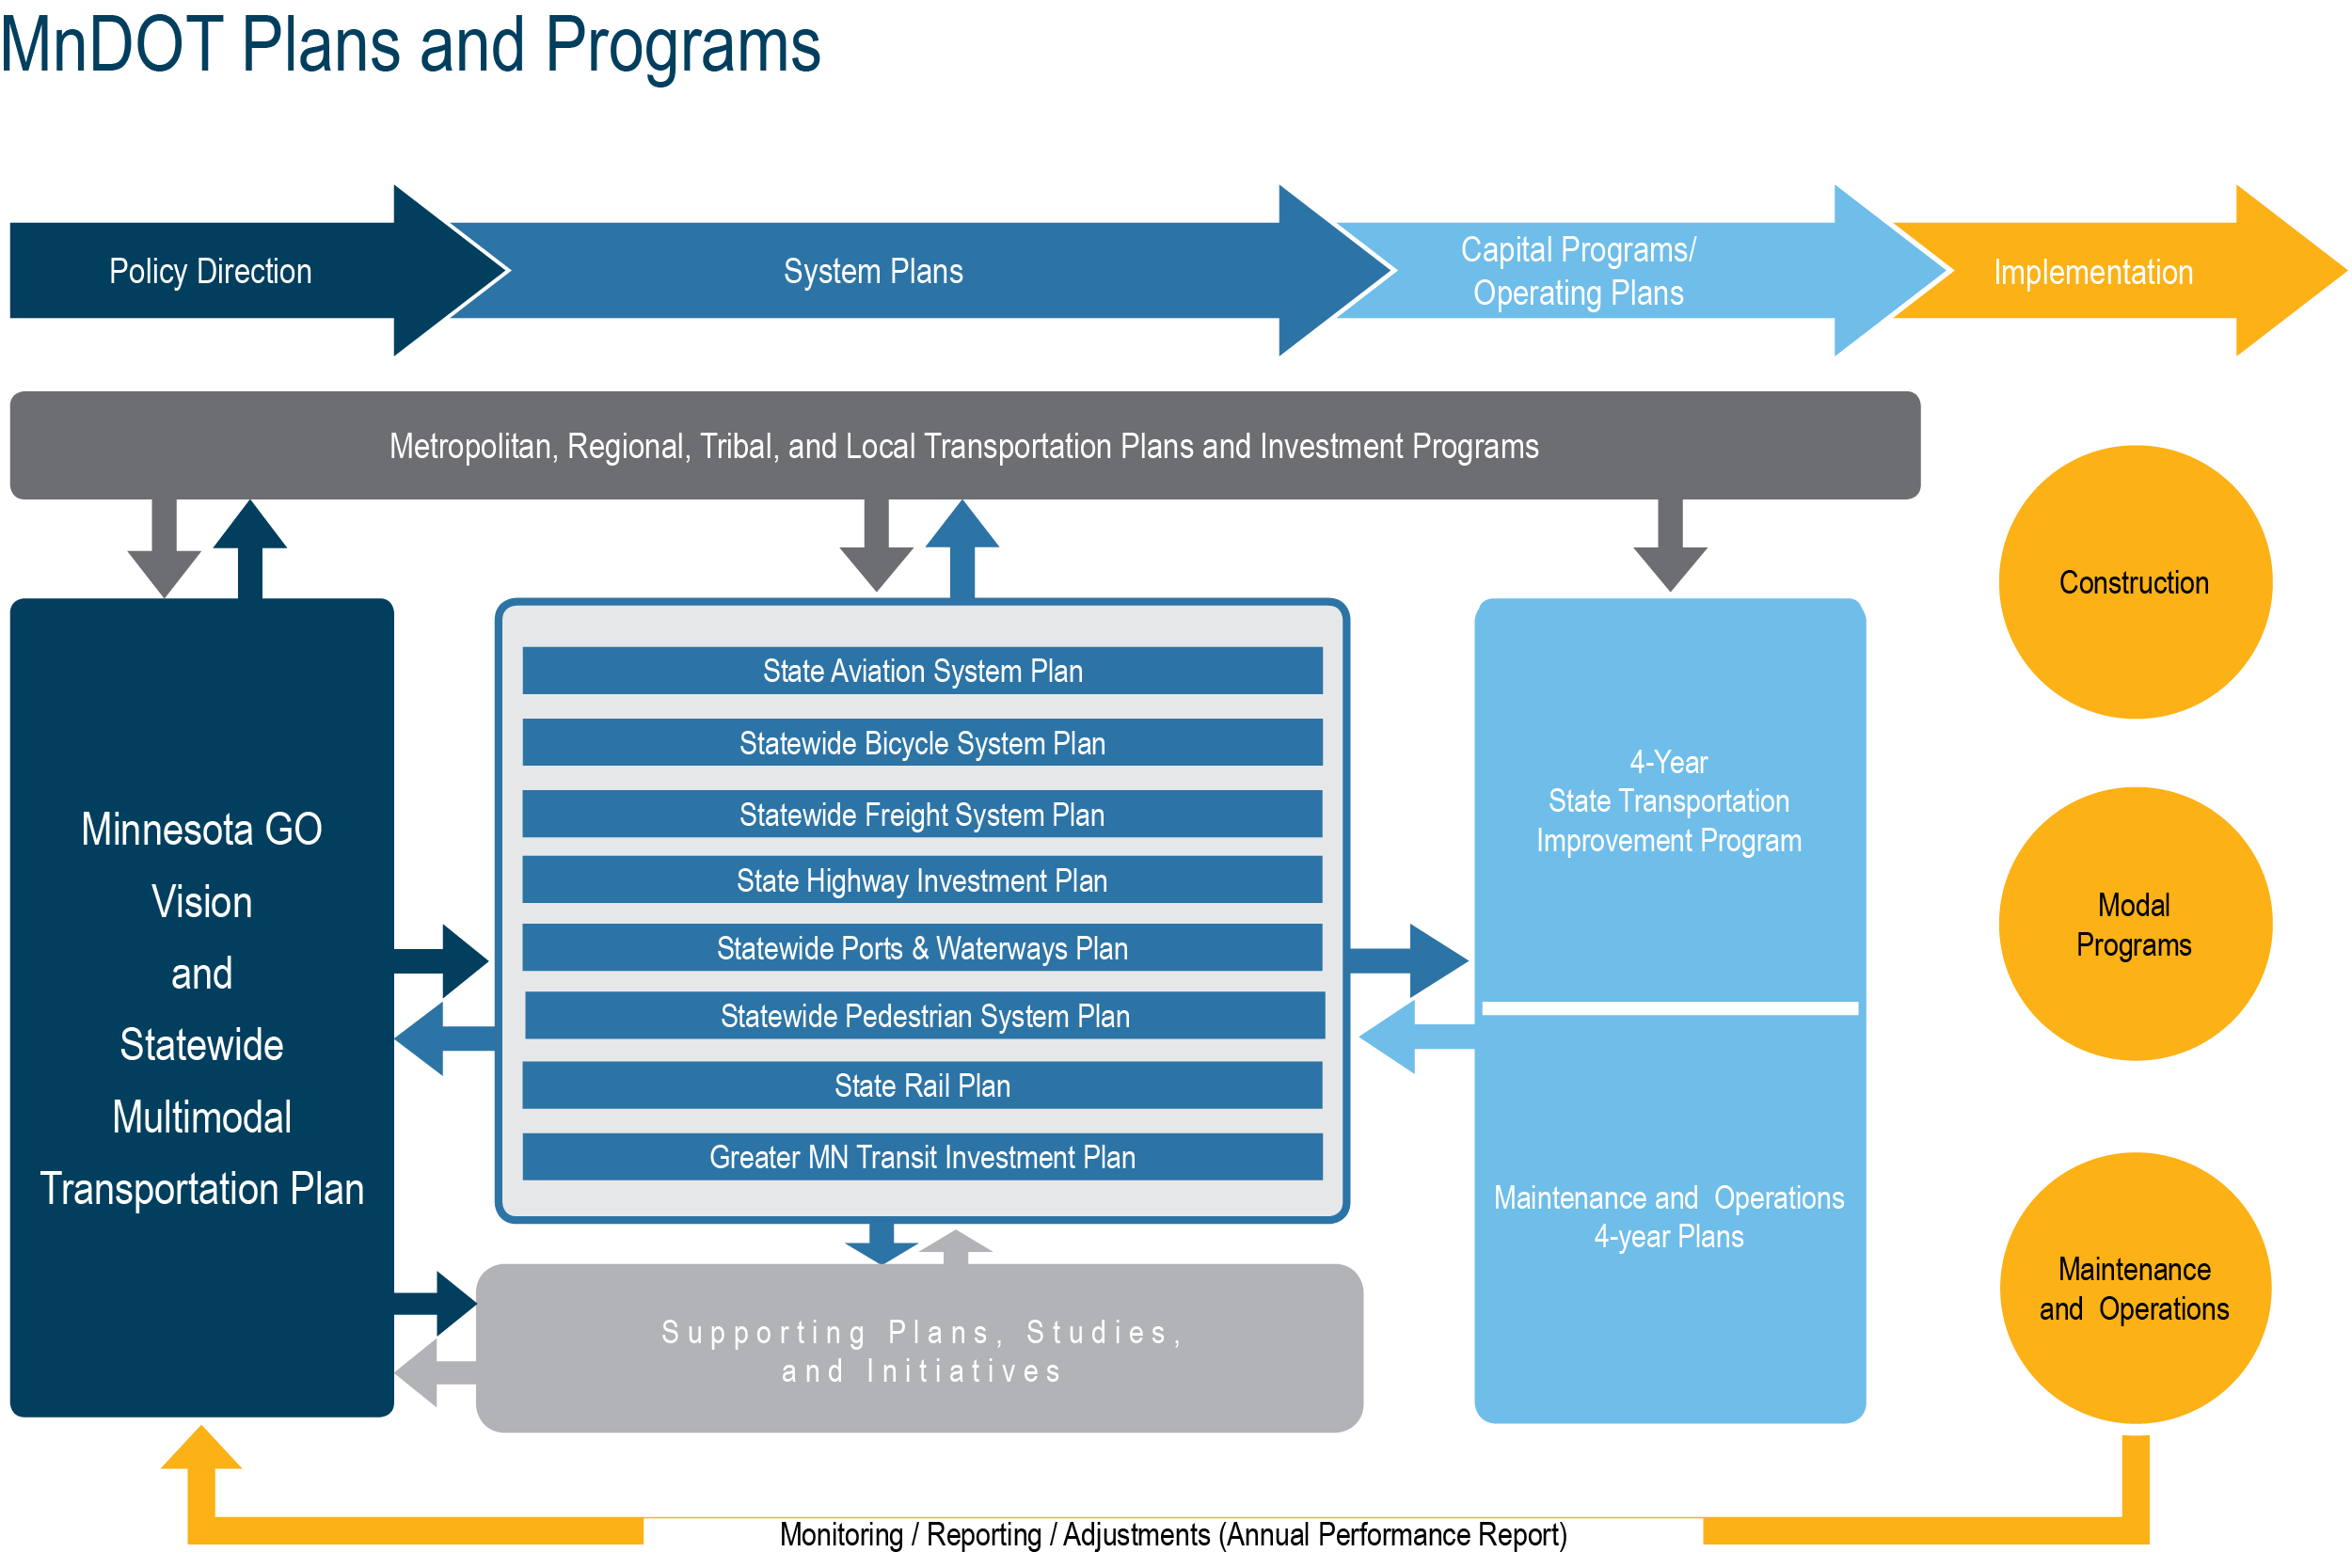 This is a flow chart from MnDOT showing its plans and programs.